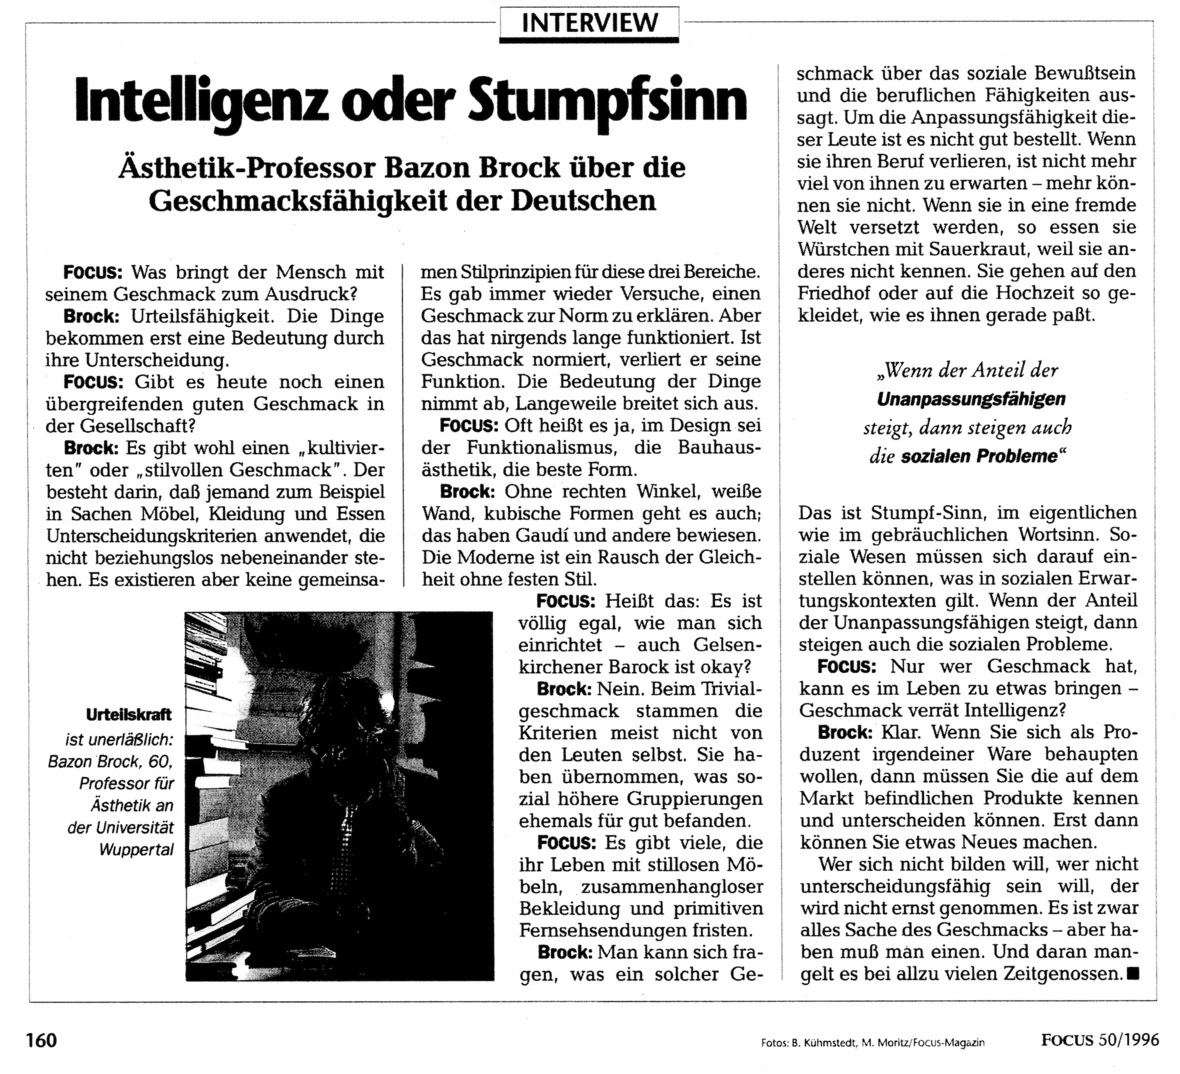 "Interview ""Intelligenz oder Stumpfsinn"". Ästhetikprofessor Bazon Brock über die Geschmacksfähigkeit der Deutschen 